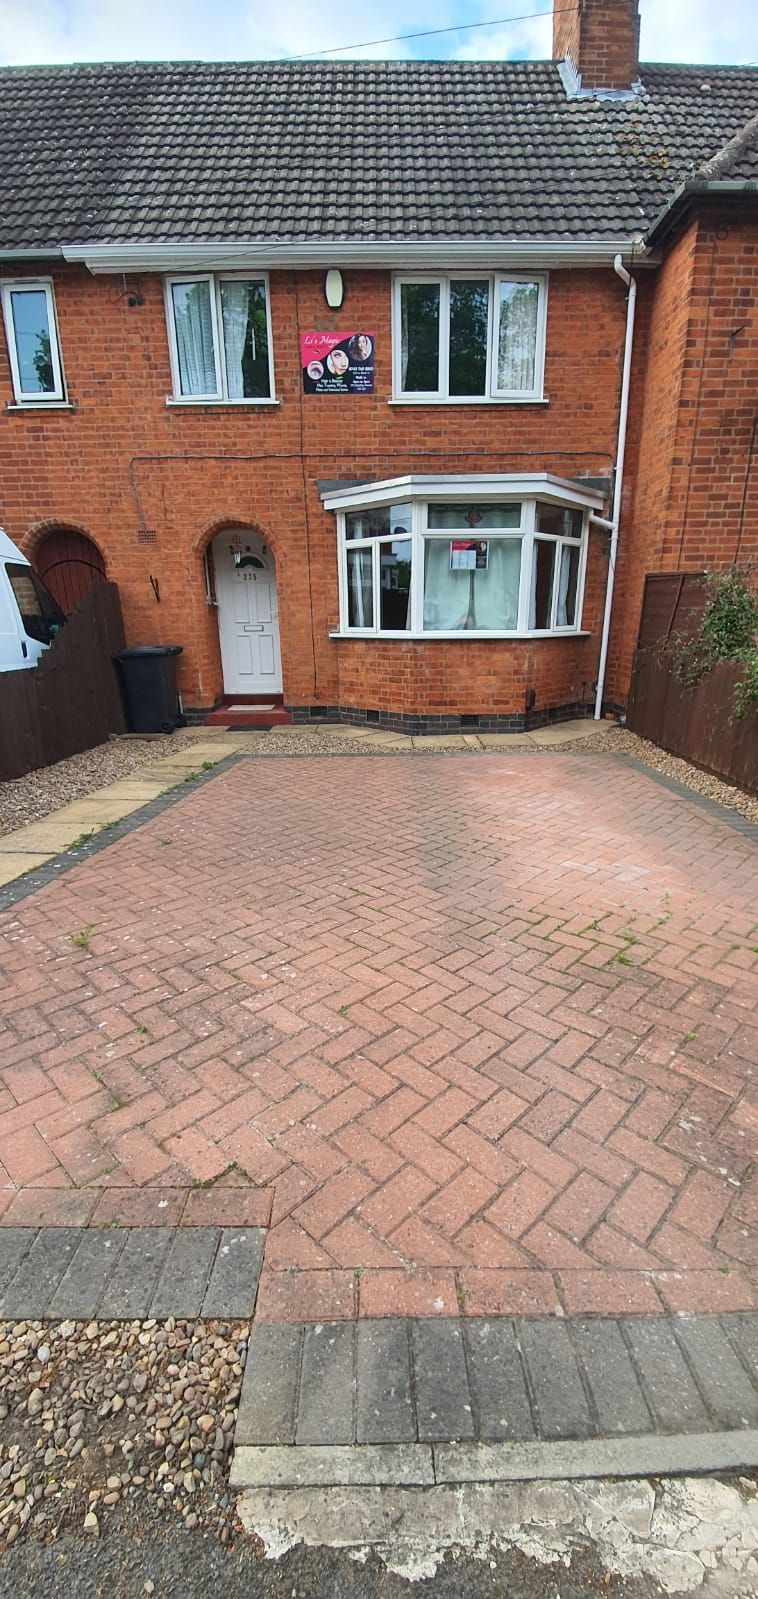 3 bedroom town house For Sale in Leicester - Photograph 1.